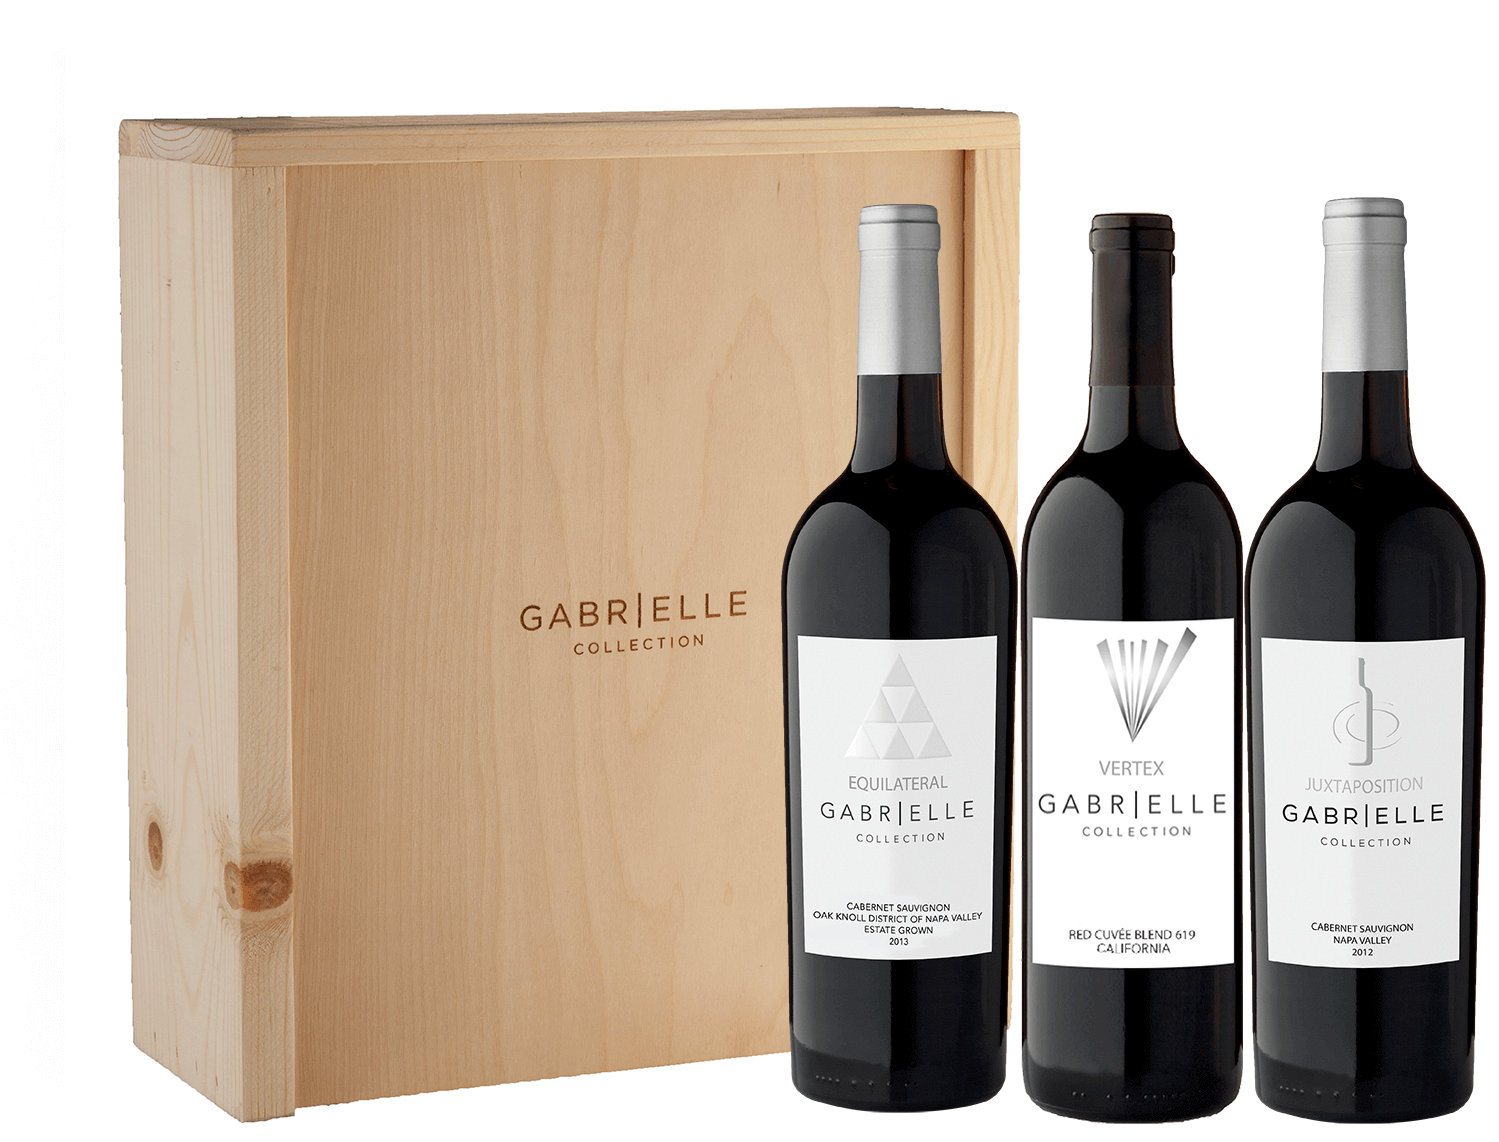 Gabrielle Collection Trio in Wood Gift Box